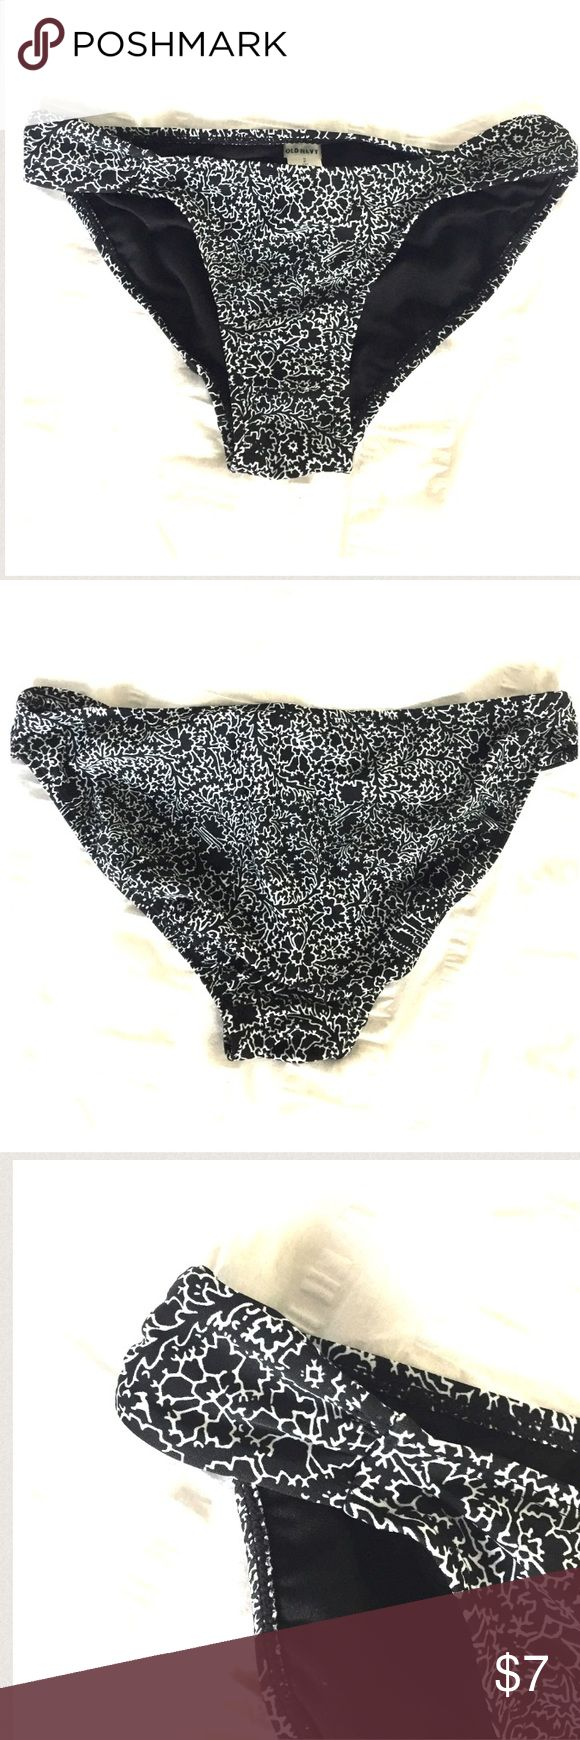 Black and white bikini bottoms Black and white bikini bottoms. Size small. Brand new with tags. Has ruched sides. Super cute! Old Navy Swim Bikinis